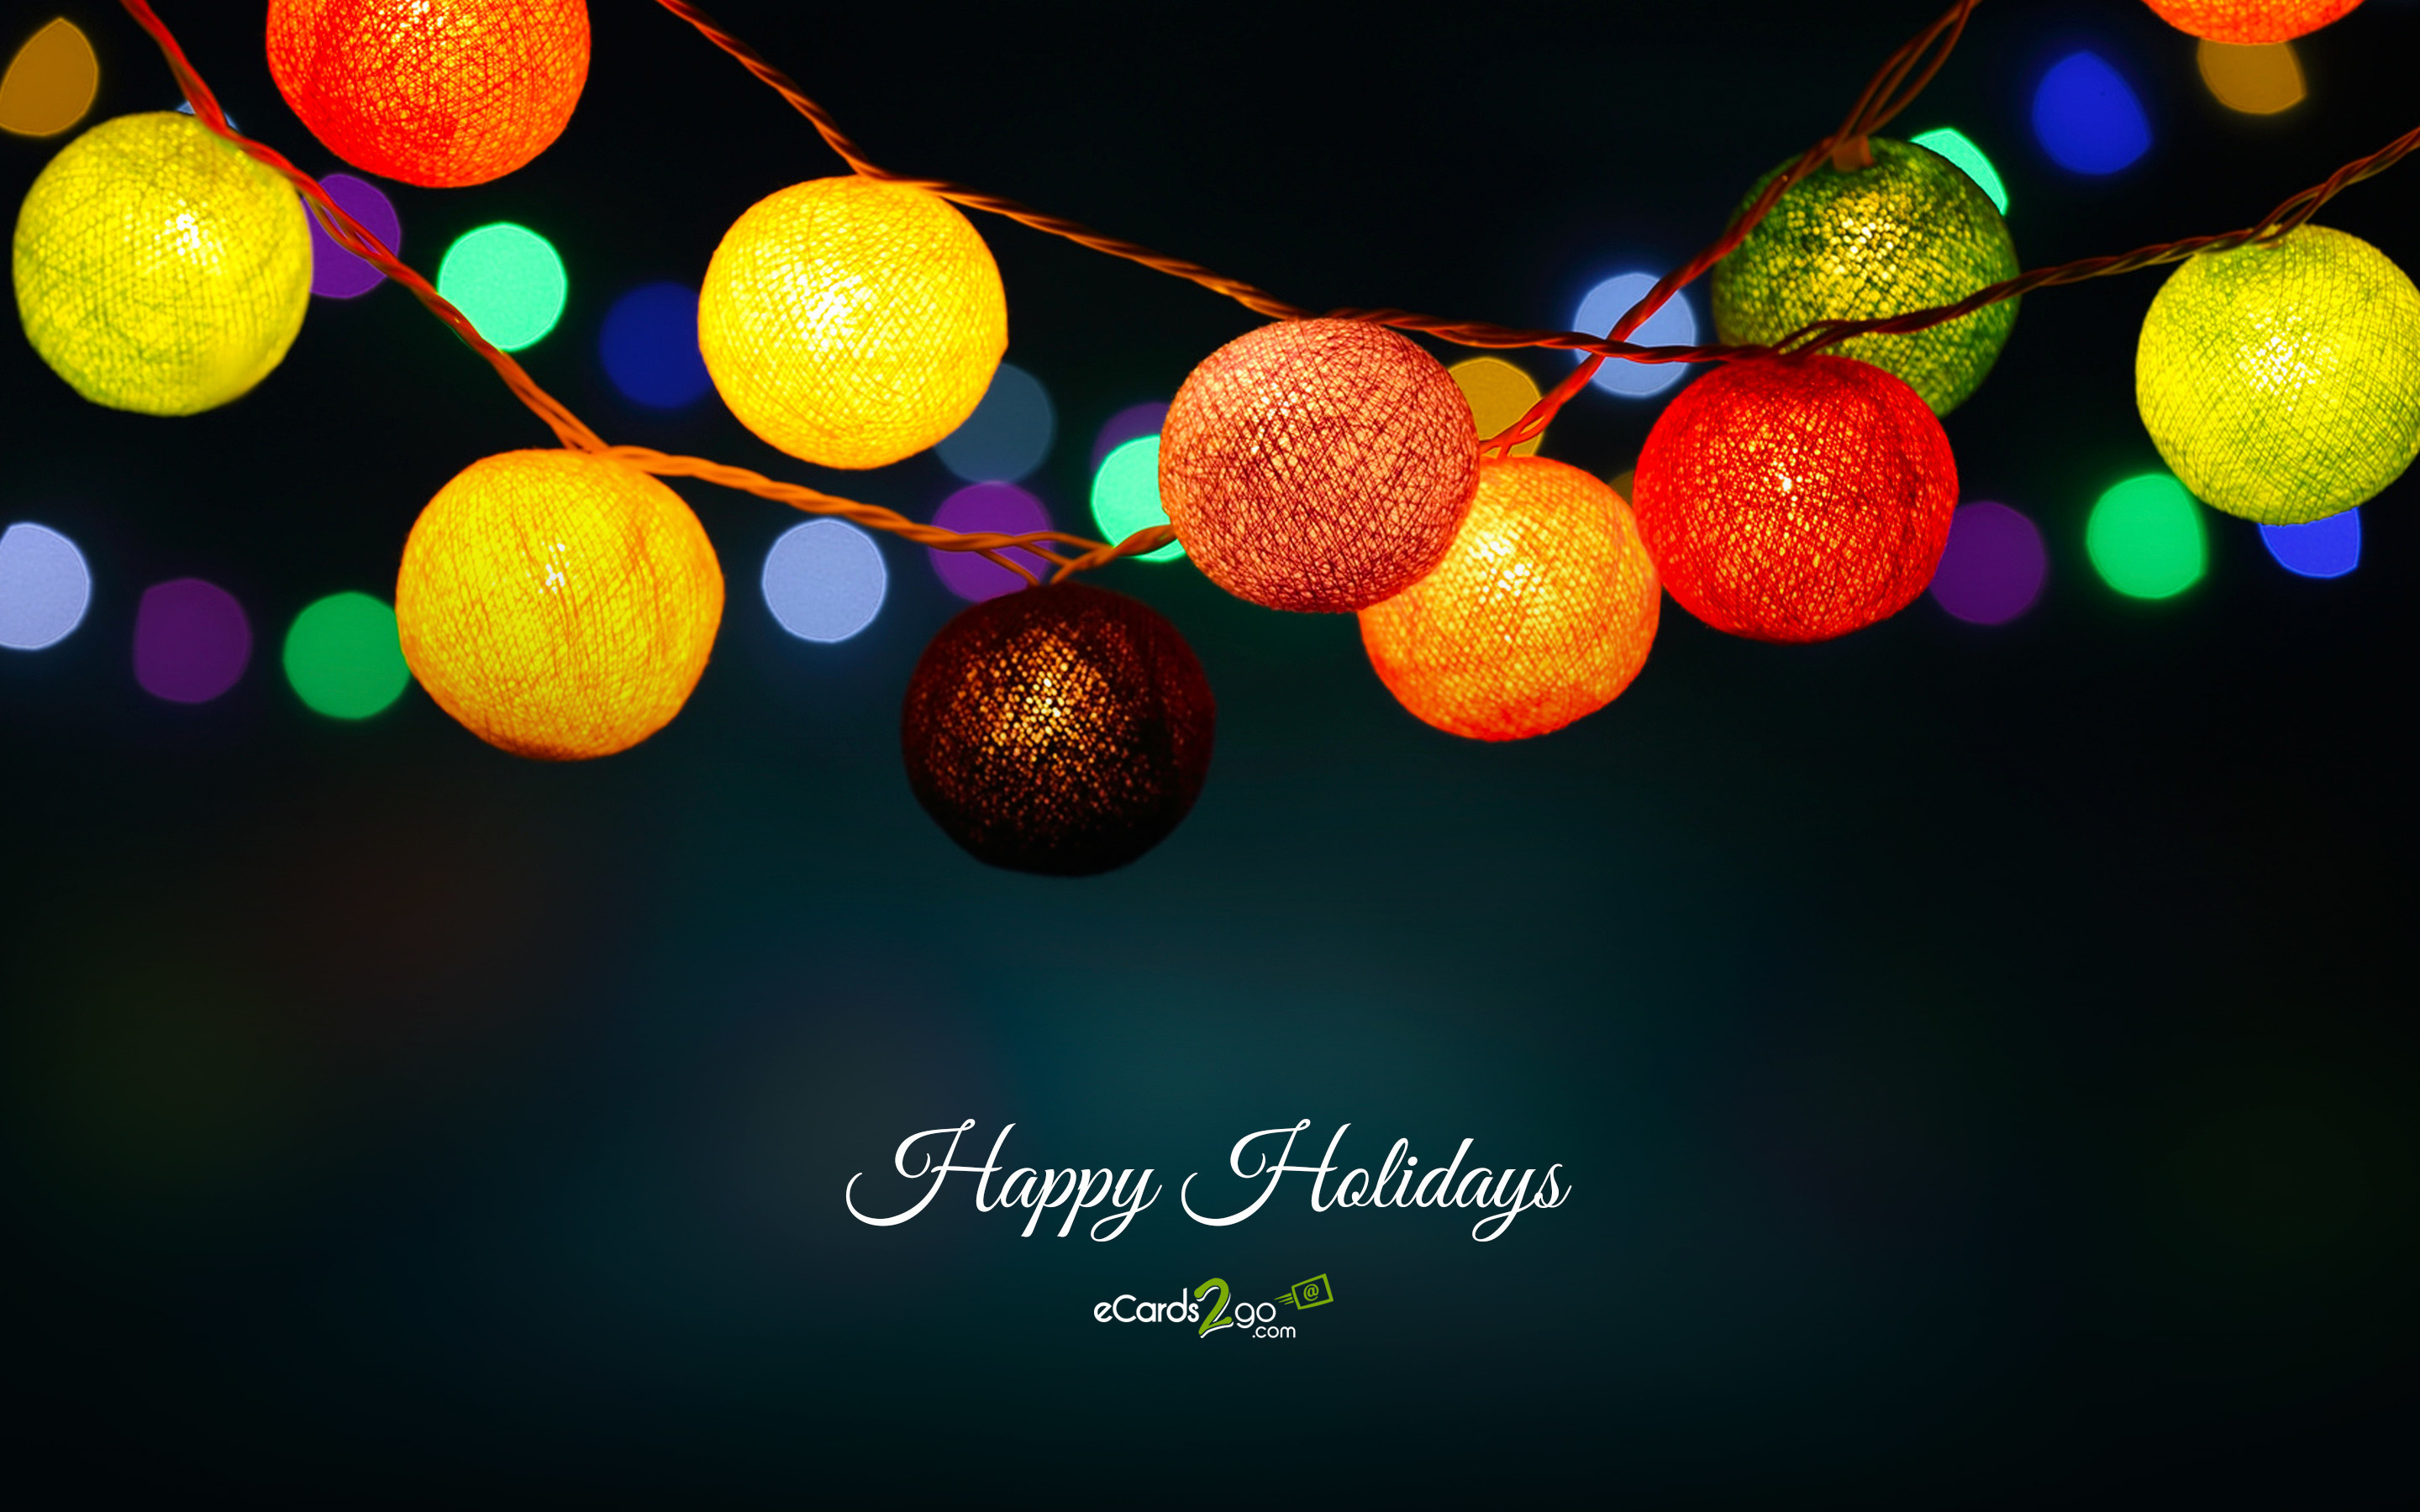 desktop holiday wallpaper  u00b7 u2460 wallpapertag